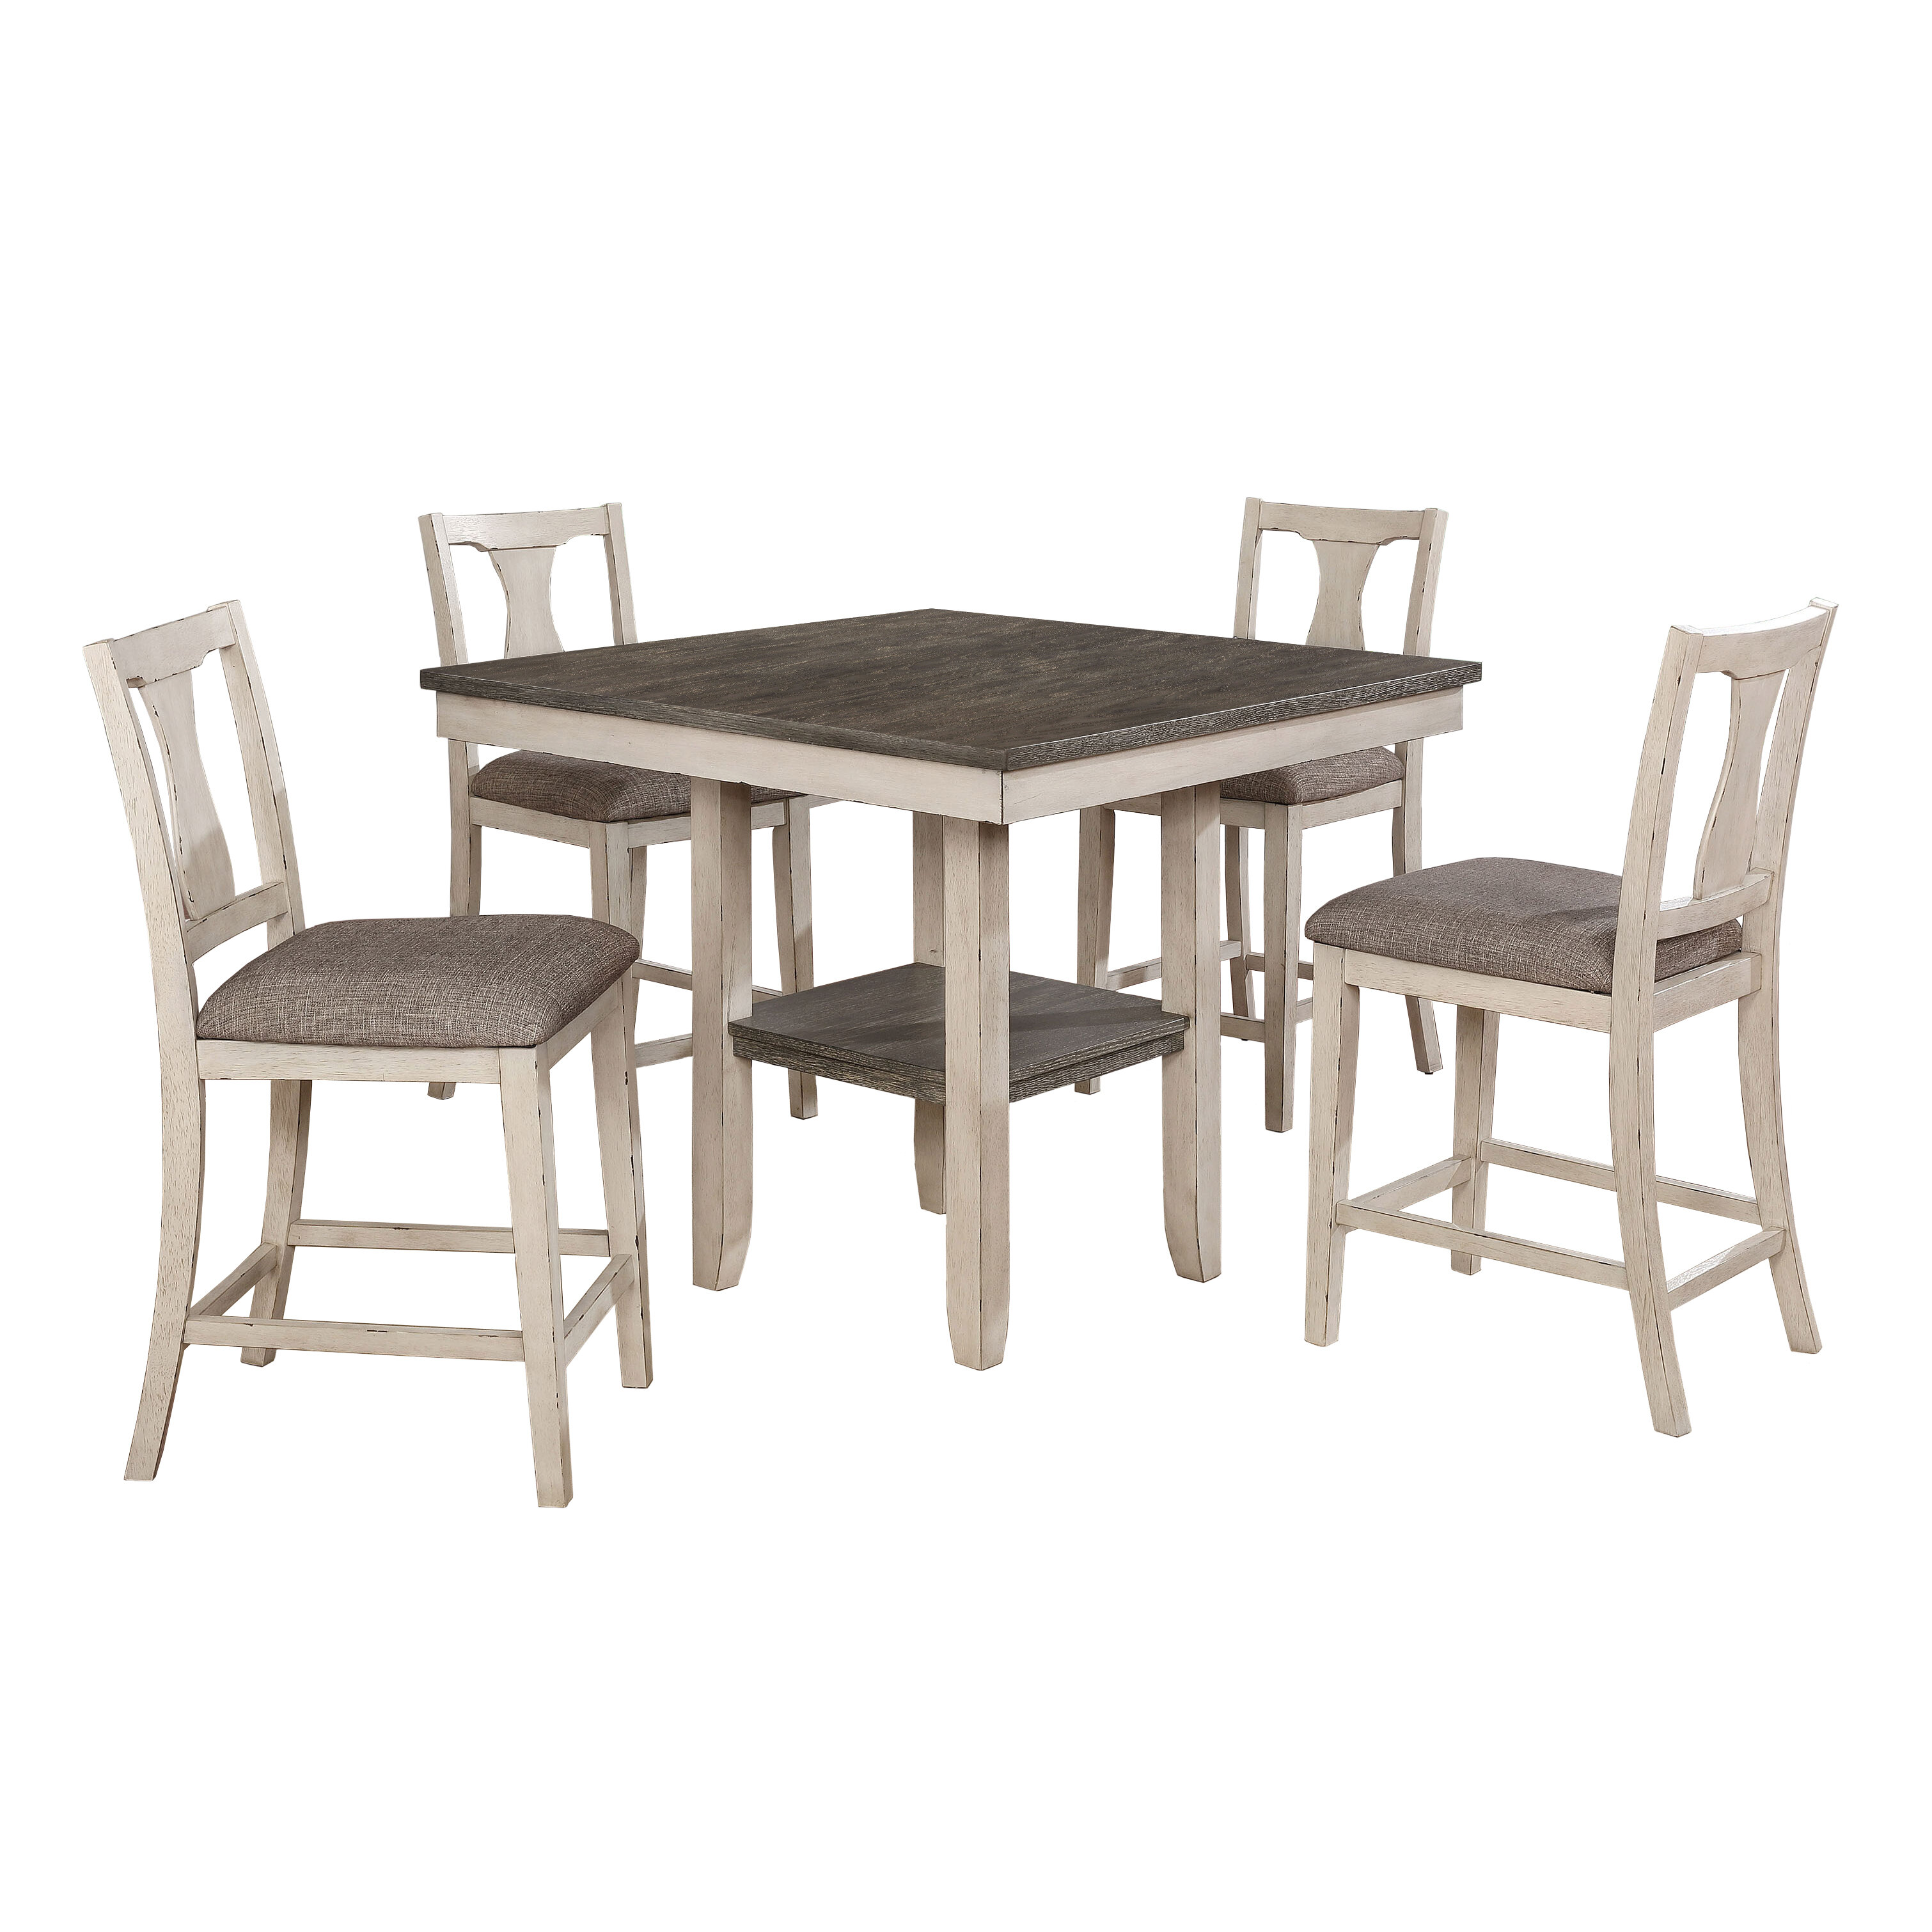 Highland Dunes Ember 5 Piece Counter Height Dining Set Reviews Wayfair Ca